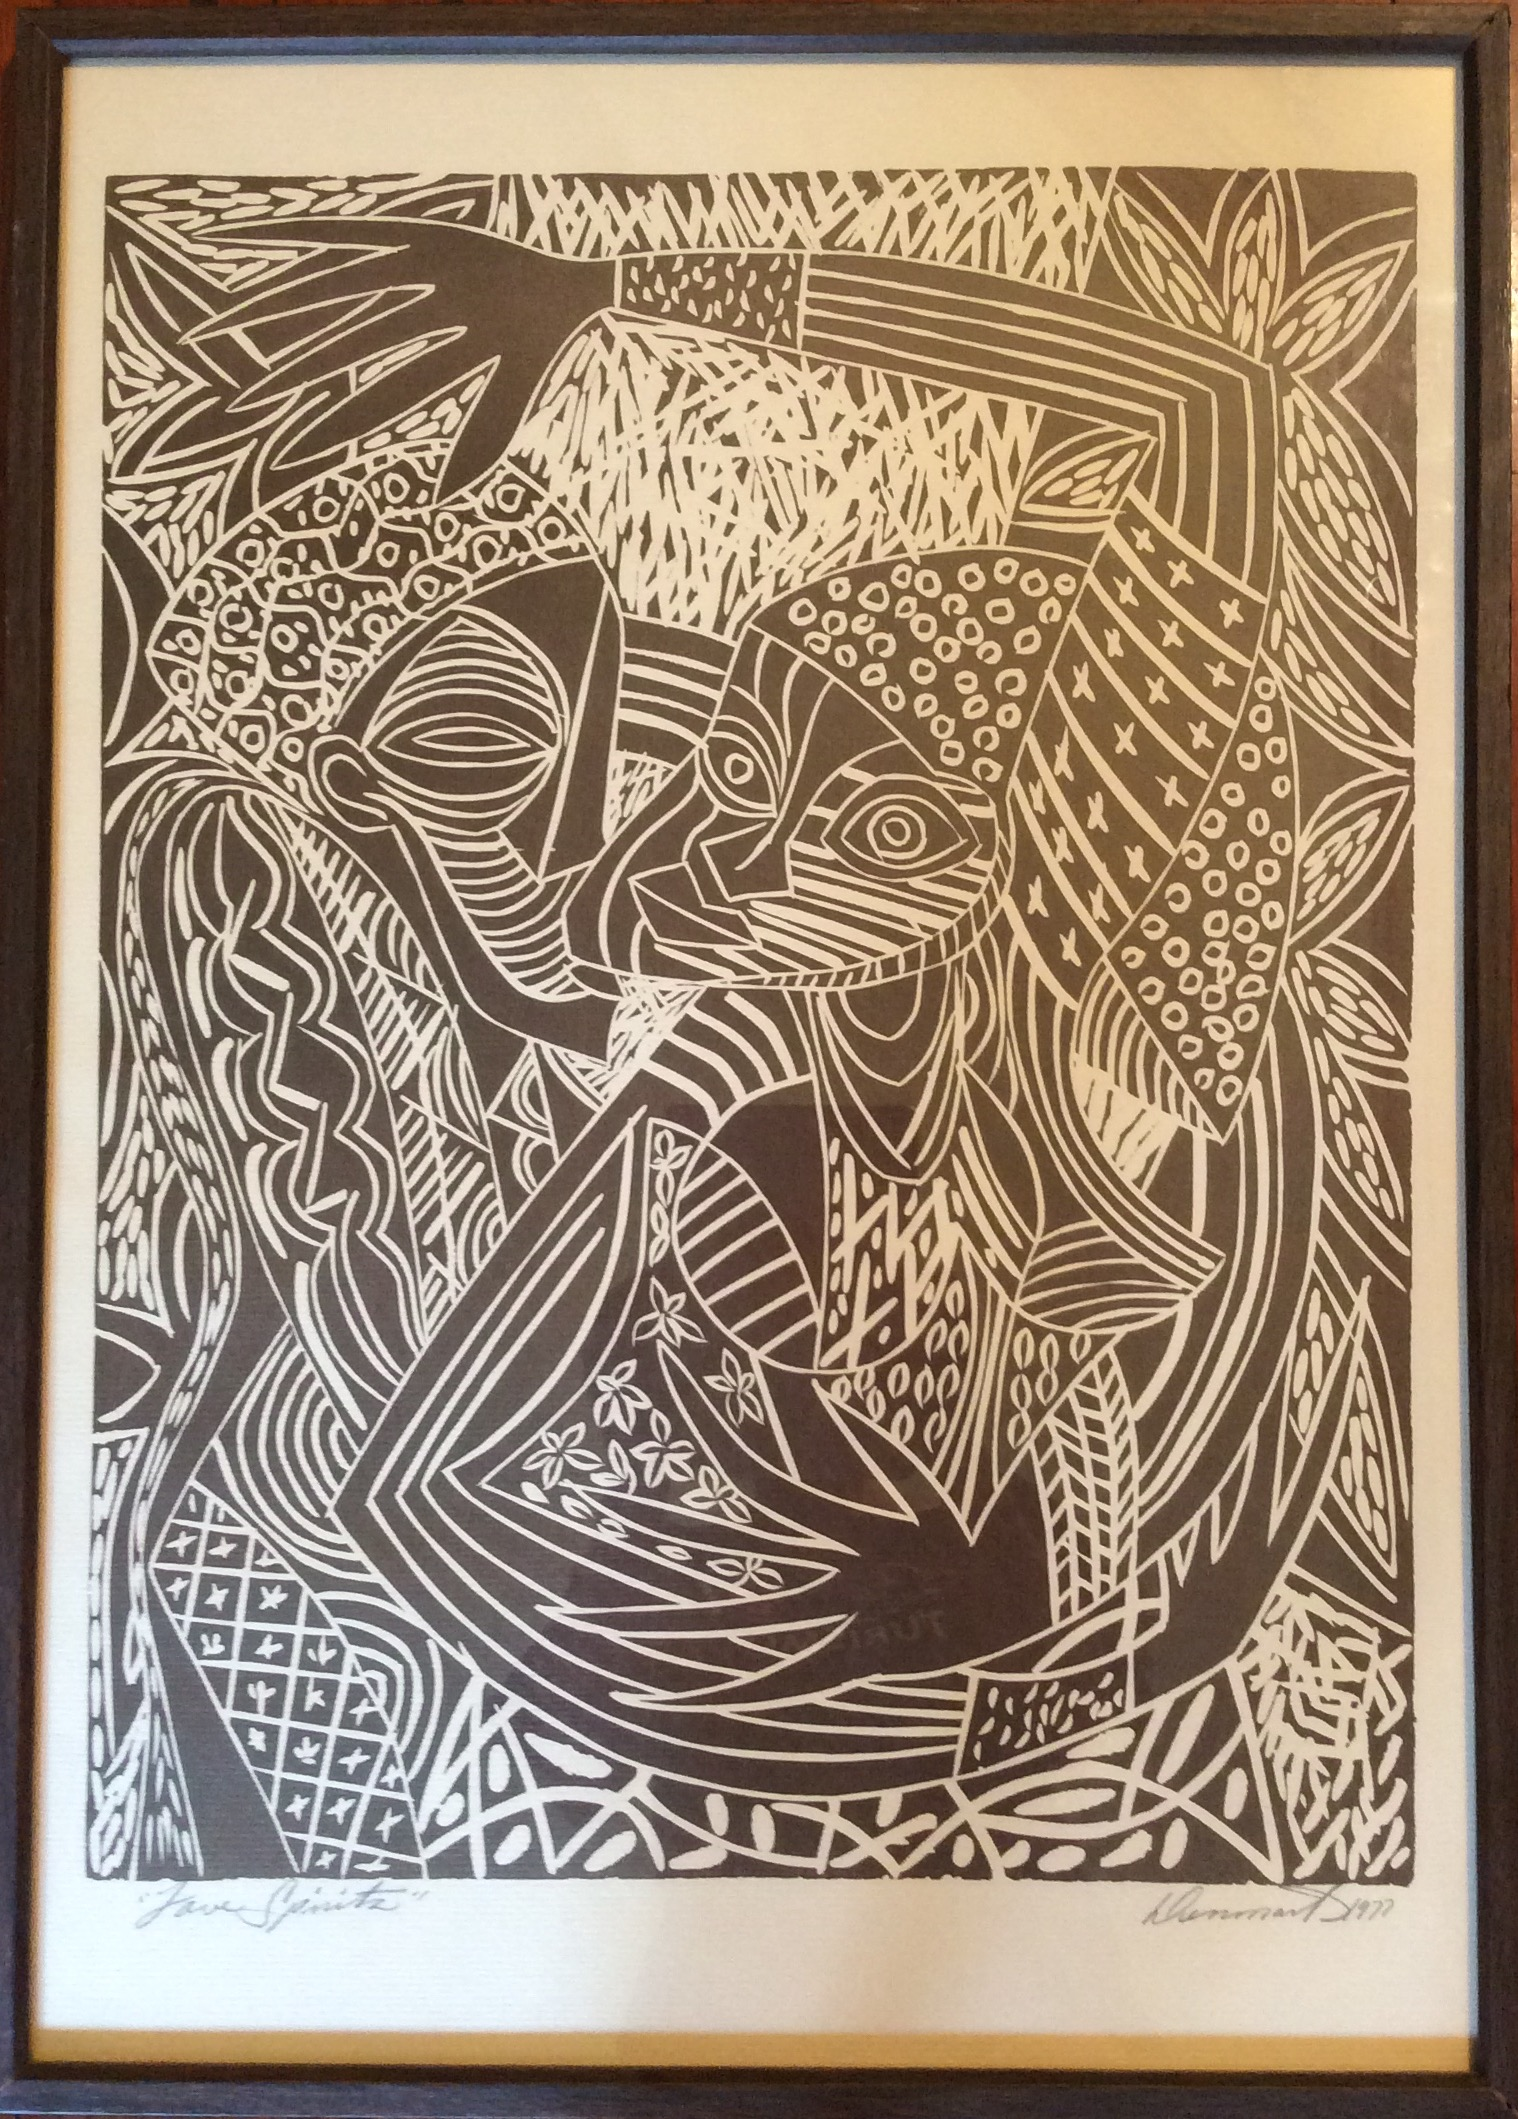 Love Spirits By James Denmark Signed In Pencil The Artist 1977 Print Open Edition